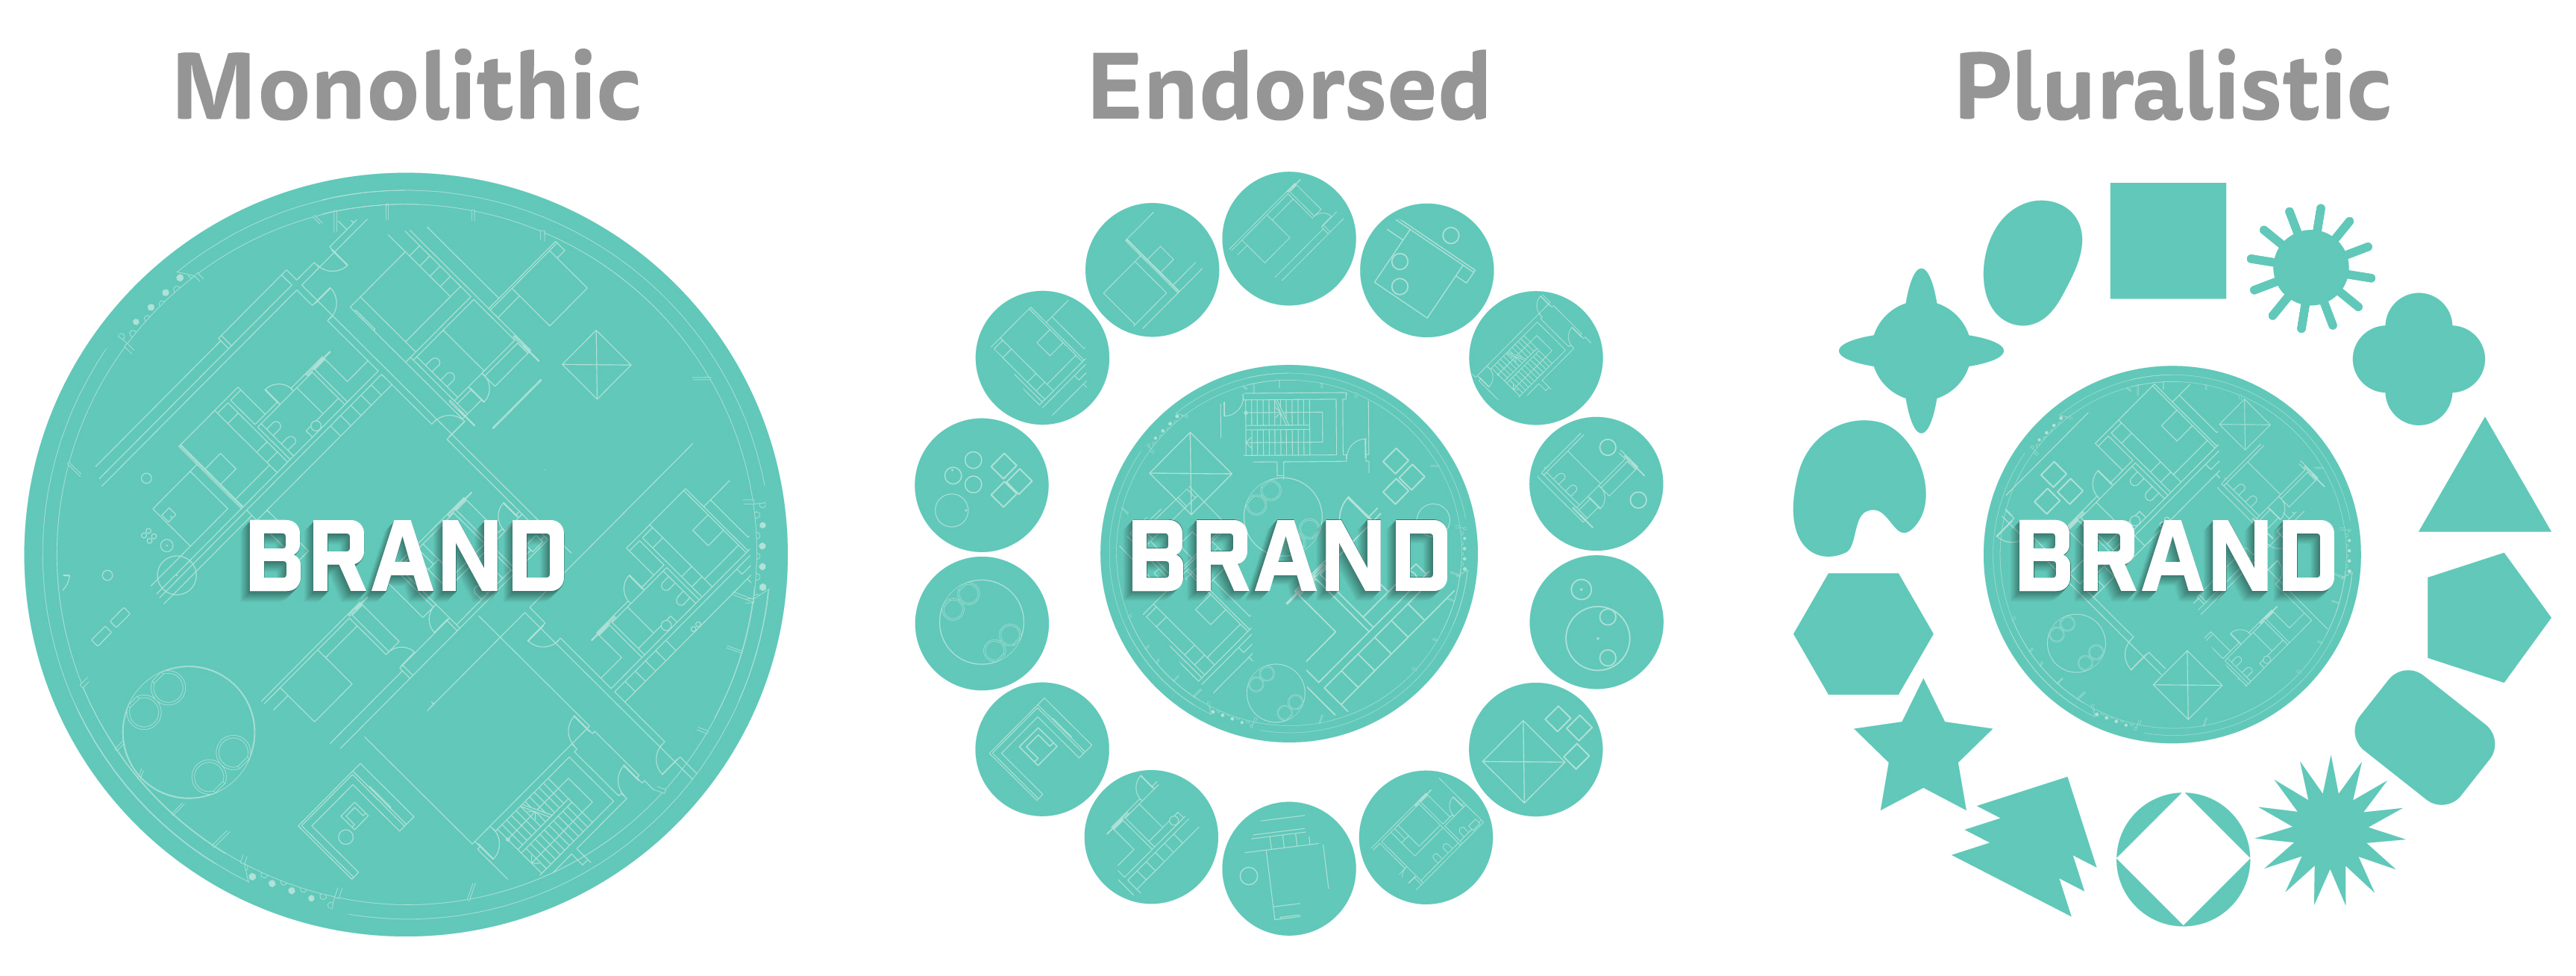 Brand Architecture infographic